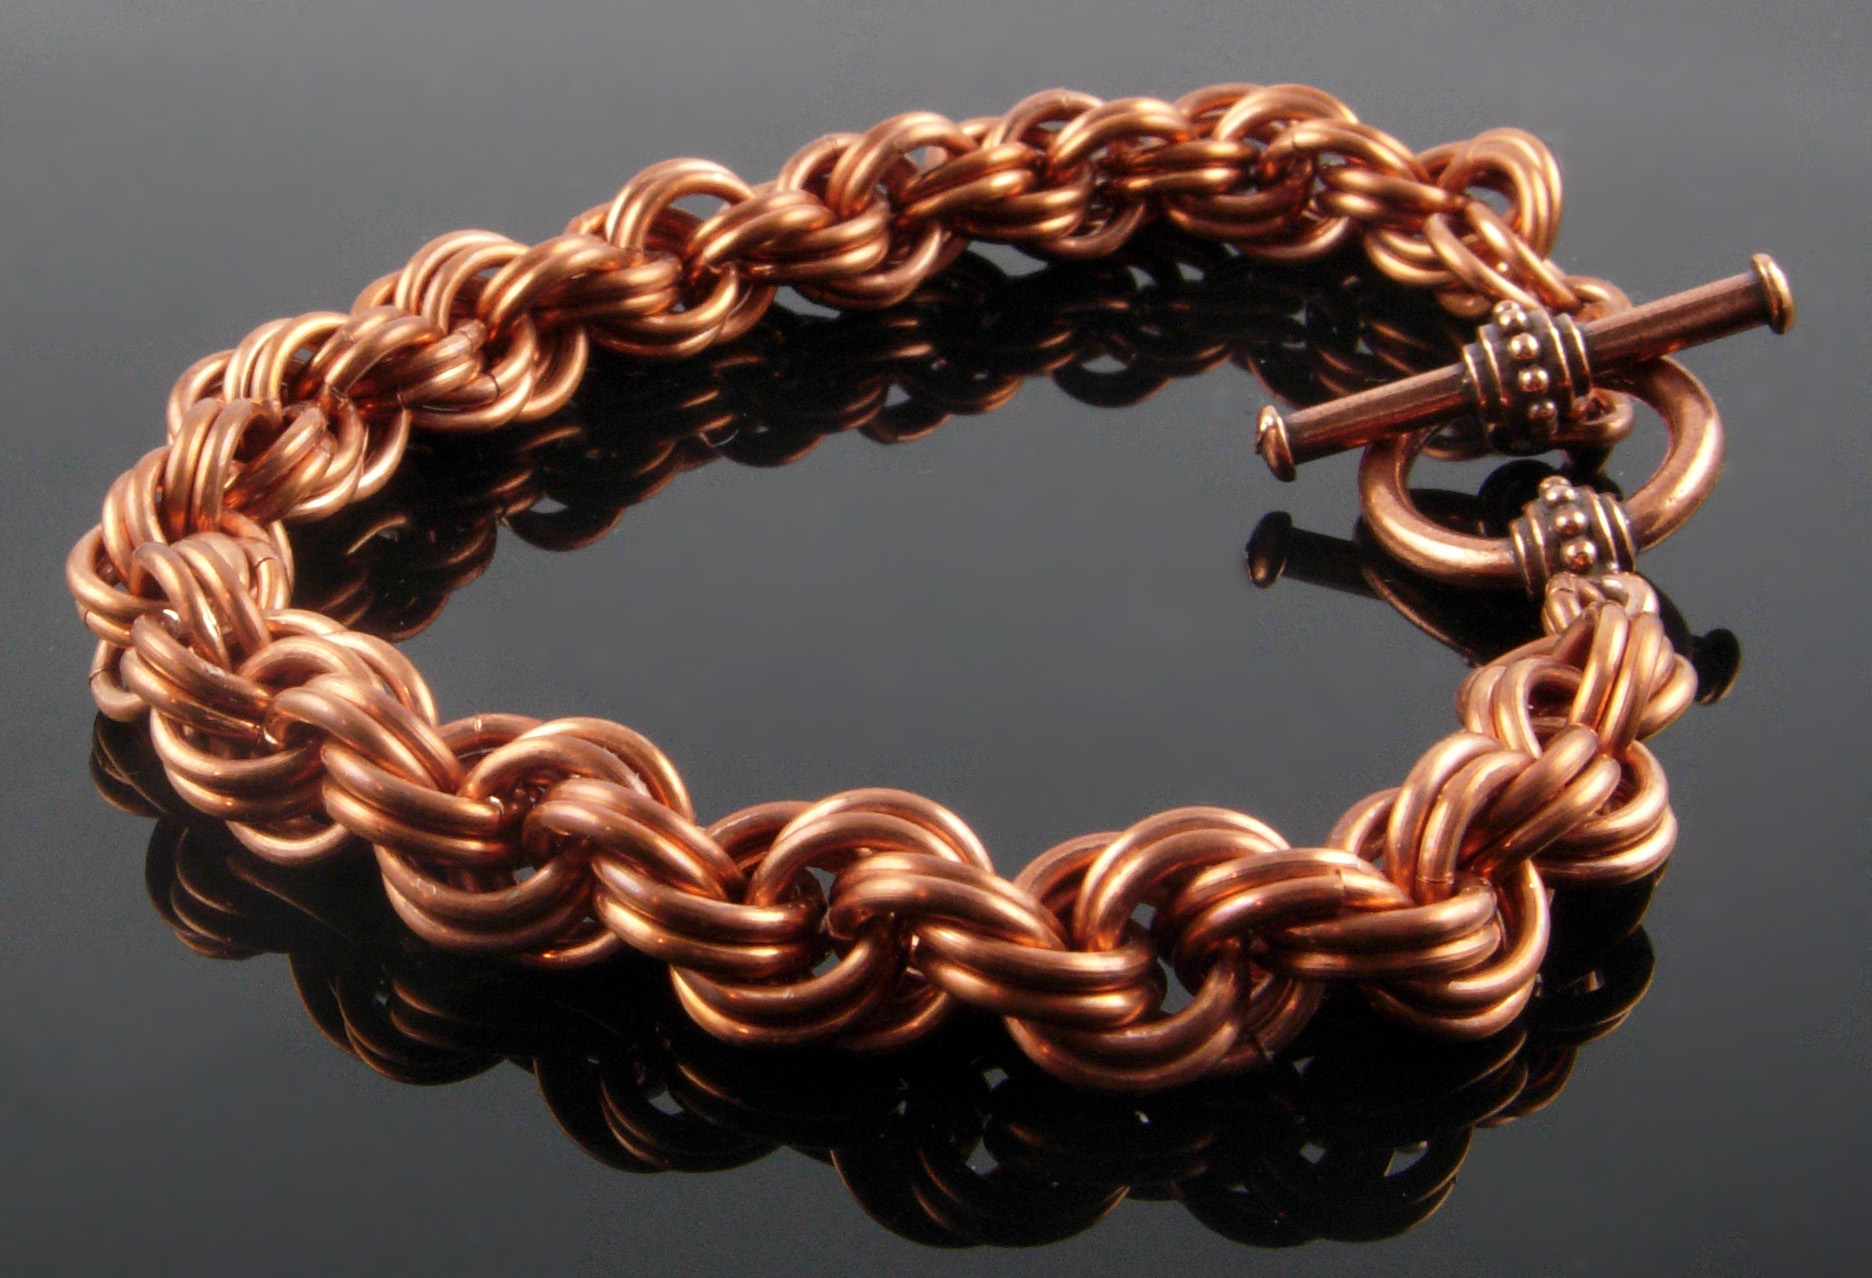 Top 5 Weaves for Chain Mail Beginners | Jewelry Making Blog ...